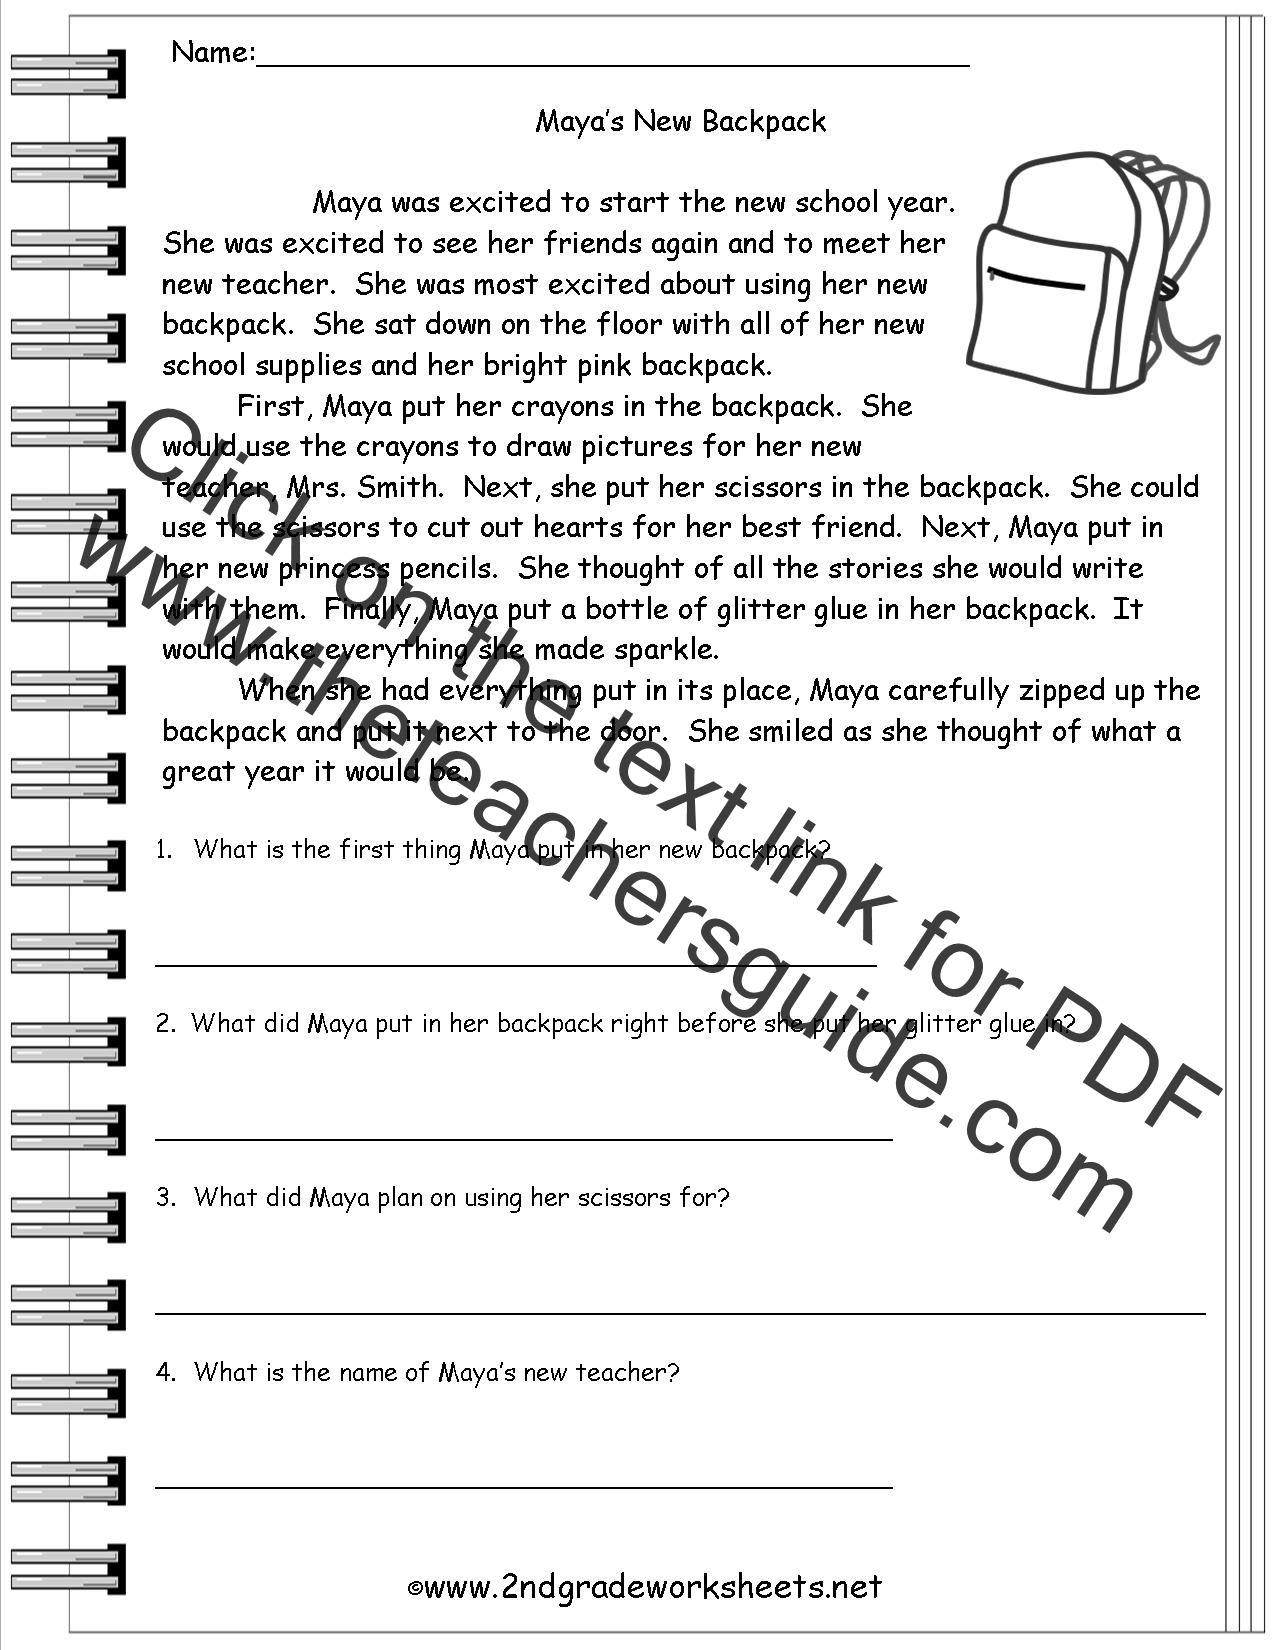 Worksheets Free 4th Grade Reading Comprehension Worksheets reading worksheeets literature worksheets